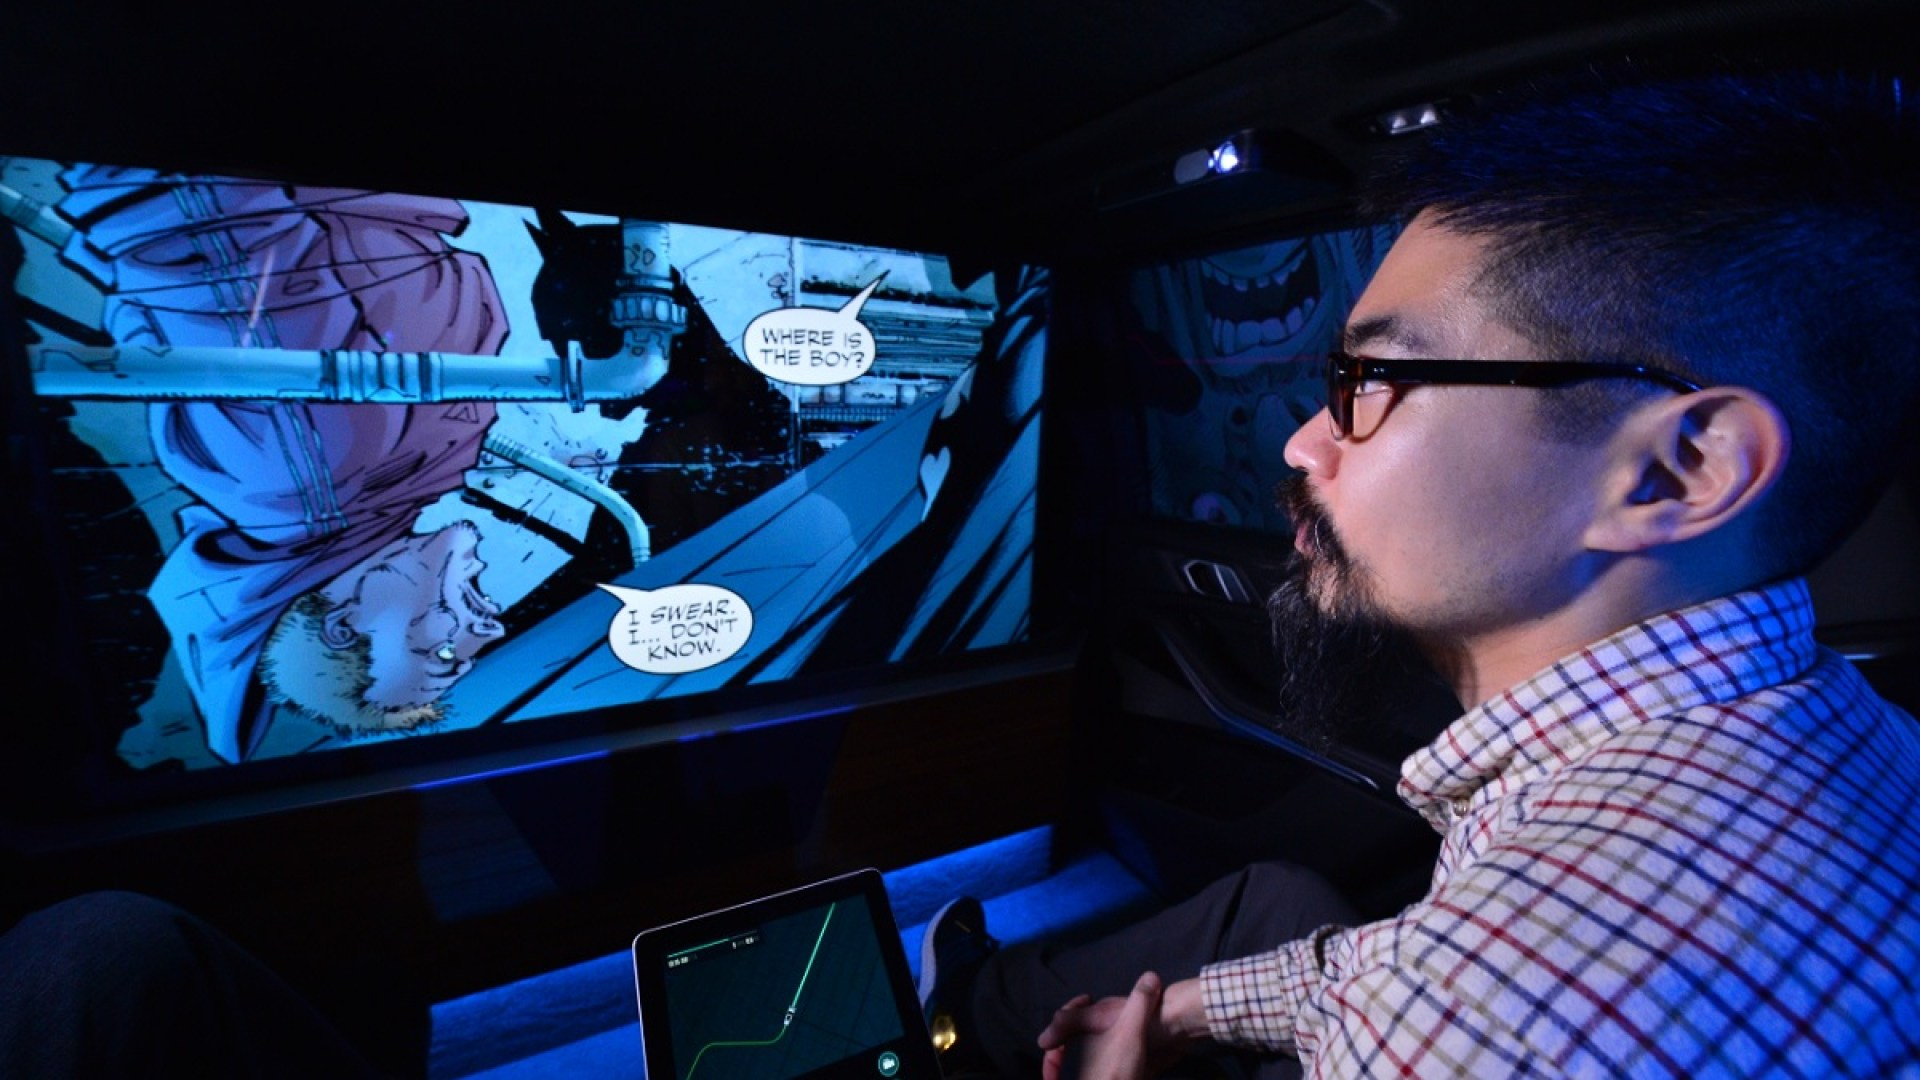 Intel and Warner Bros. show off Batman experience for self-driving car